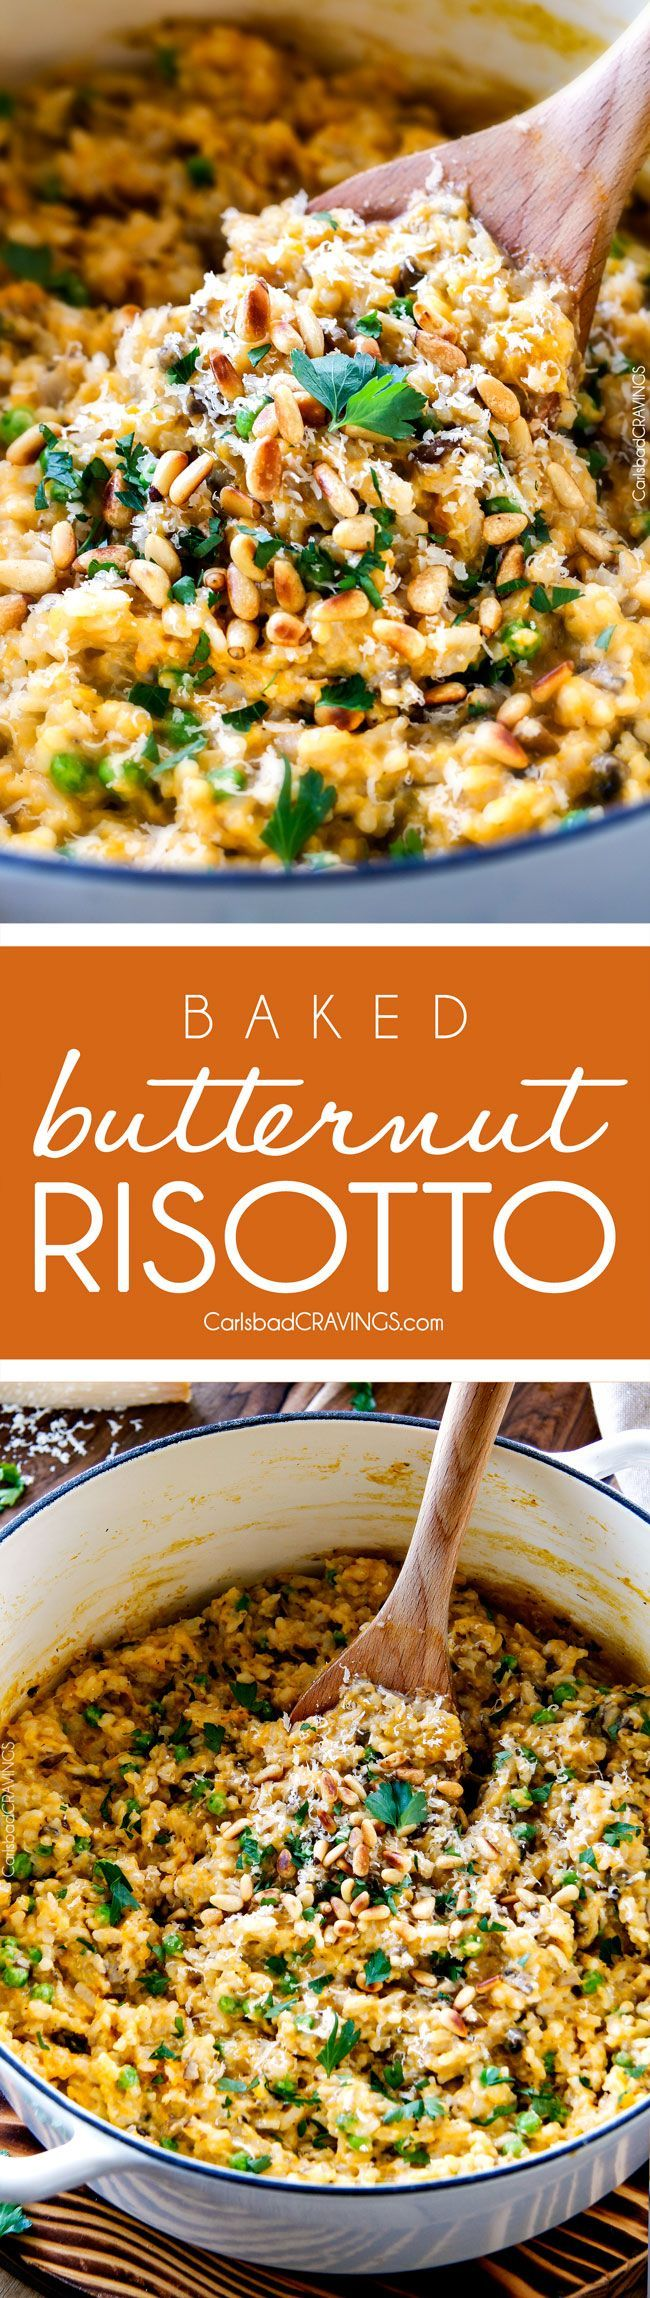 No Babysitting, easy, creamy BAKED Butternut Squash Risotto! This simple to prepare risotto is wonderfully smooth and creamy, seasoned to perfection and is absolutely fool proof! It makes the most ama